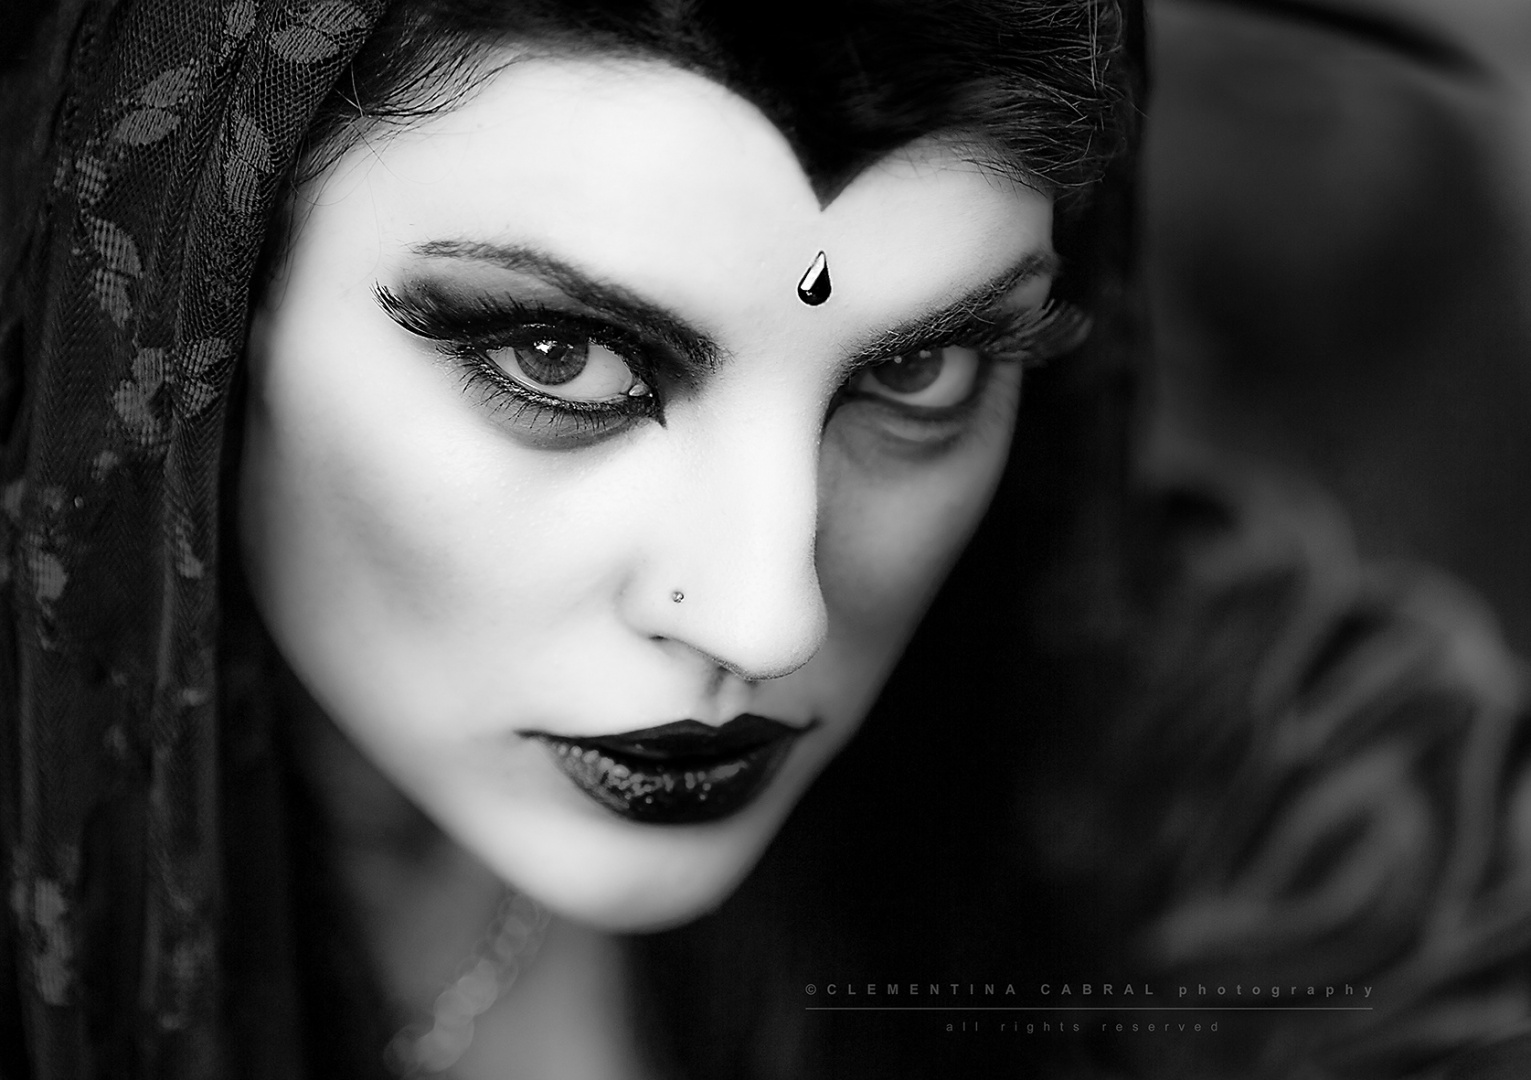 Retratos/Evil Queen